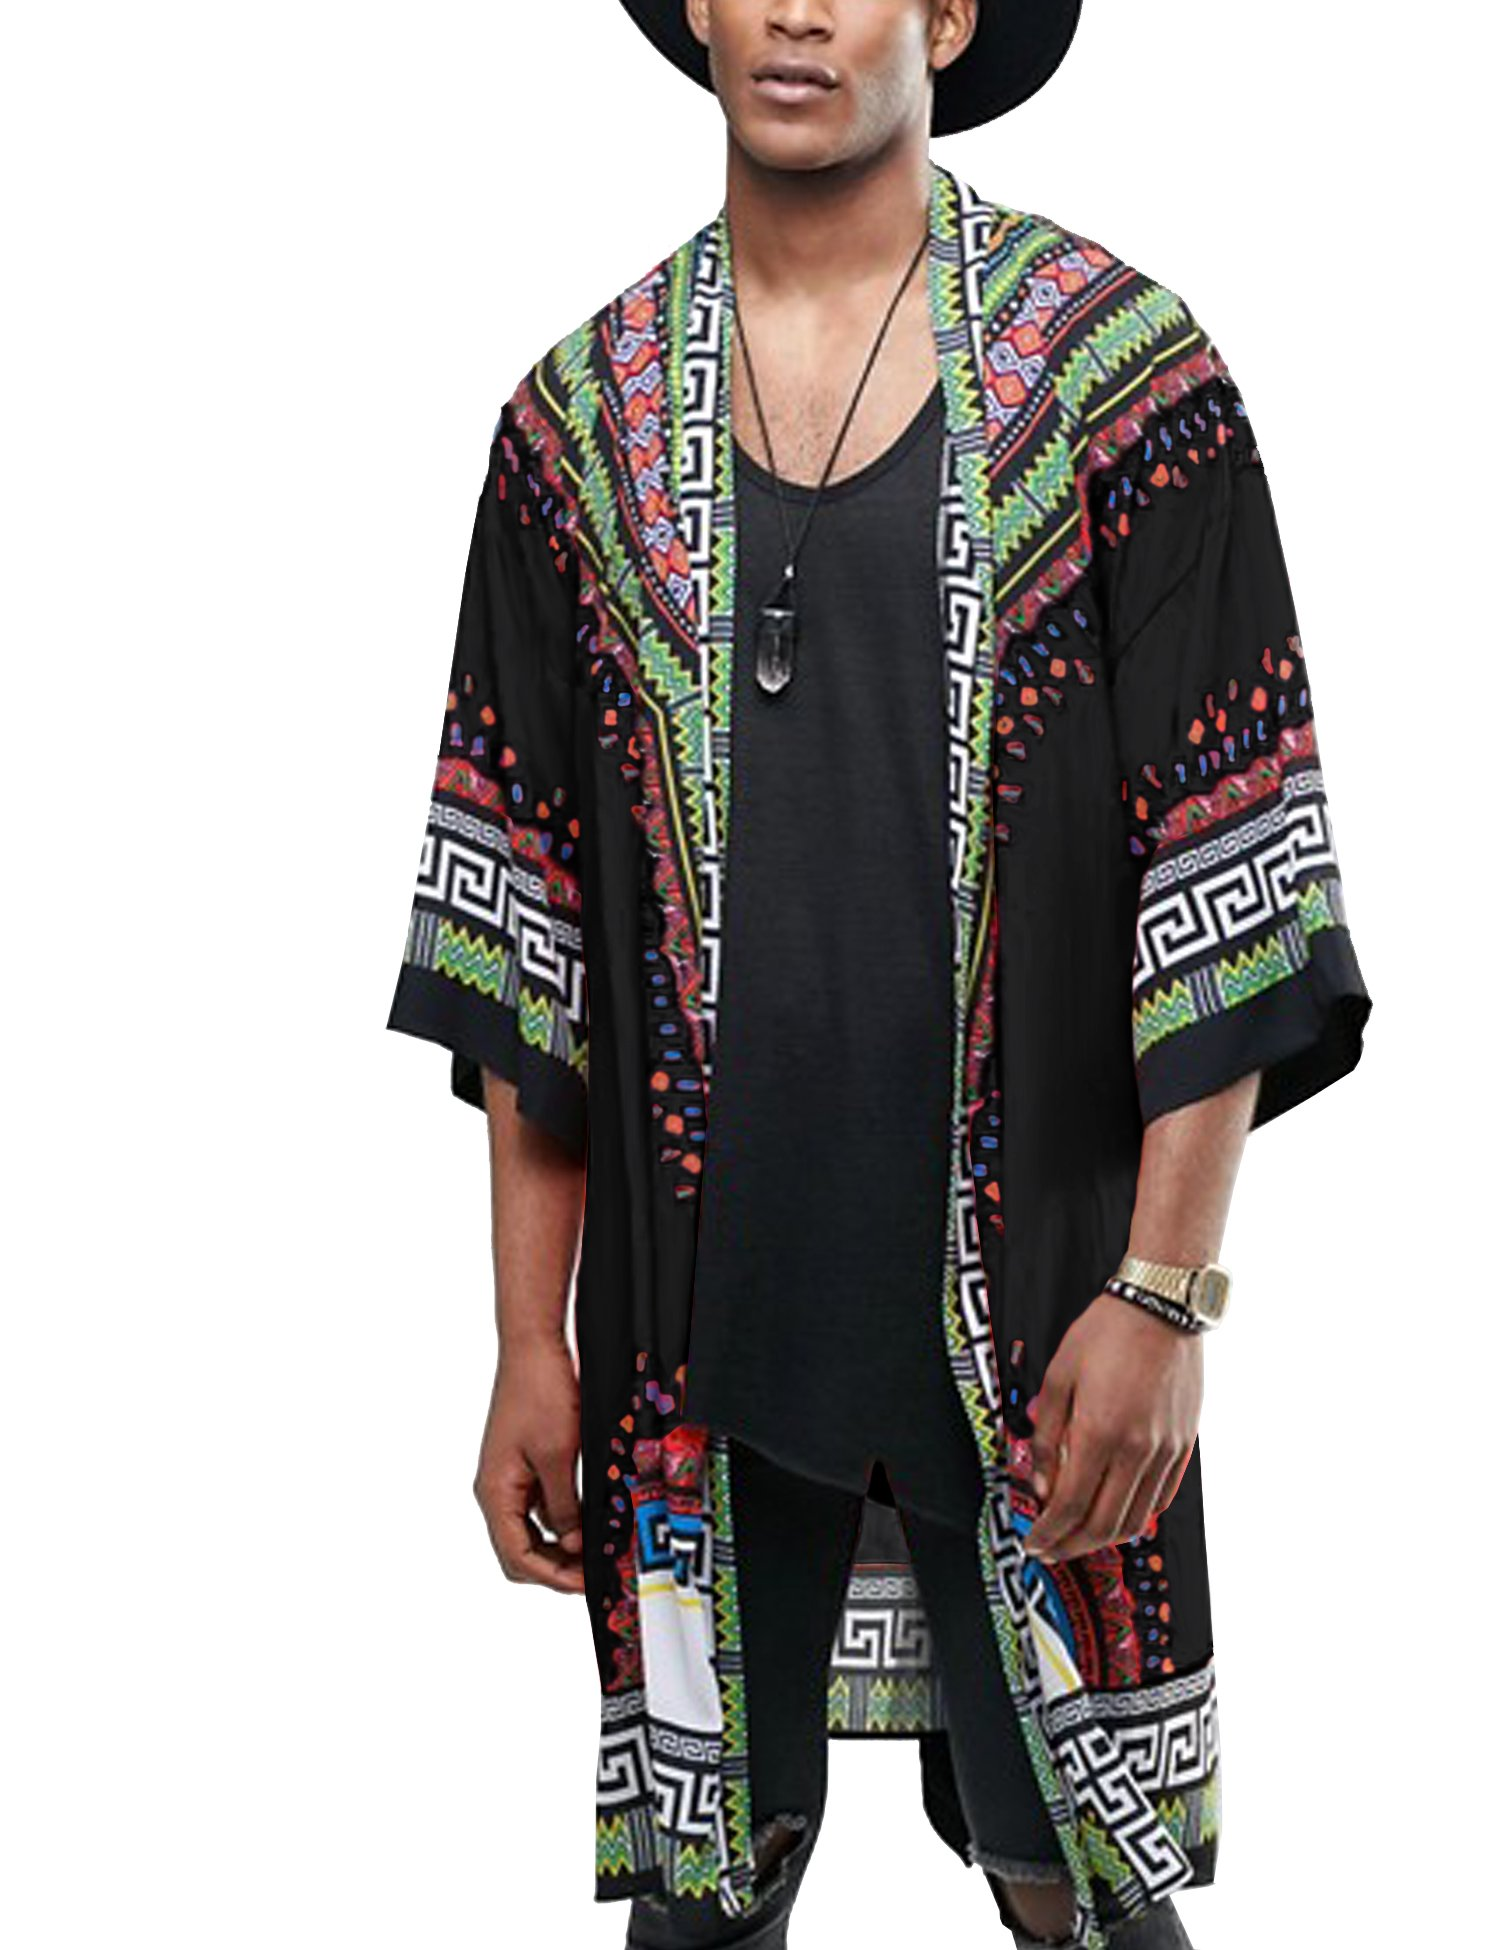 COOFANDY Mens Hipster Hip Hop 3/4 Sleeve African Dashiki Printed Ruffle Shawl Collar Cardigan Top with Belt,Black,Medium